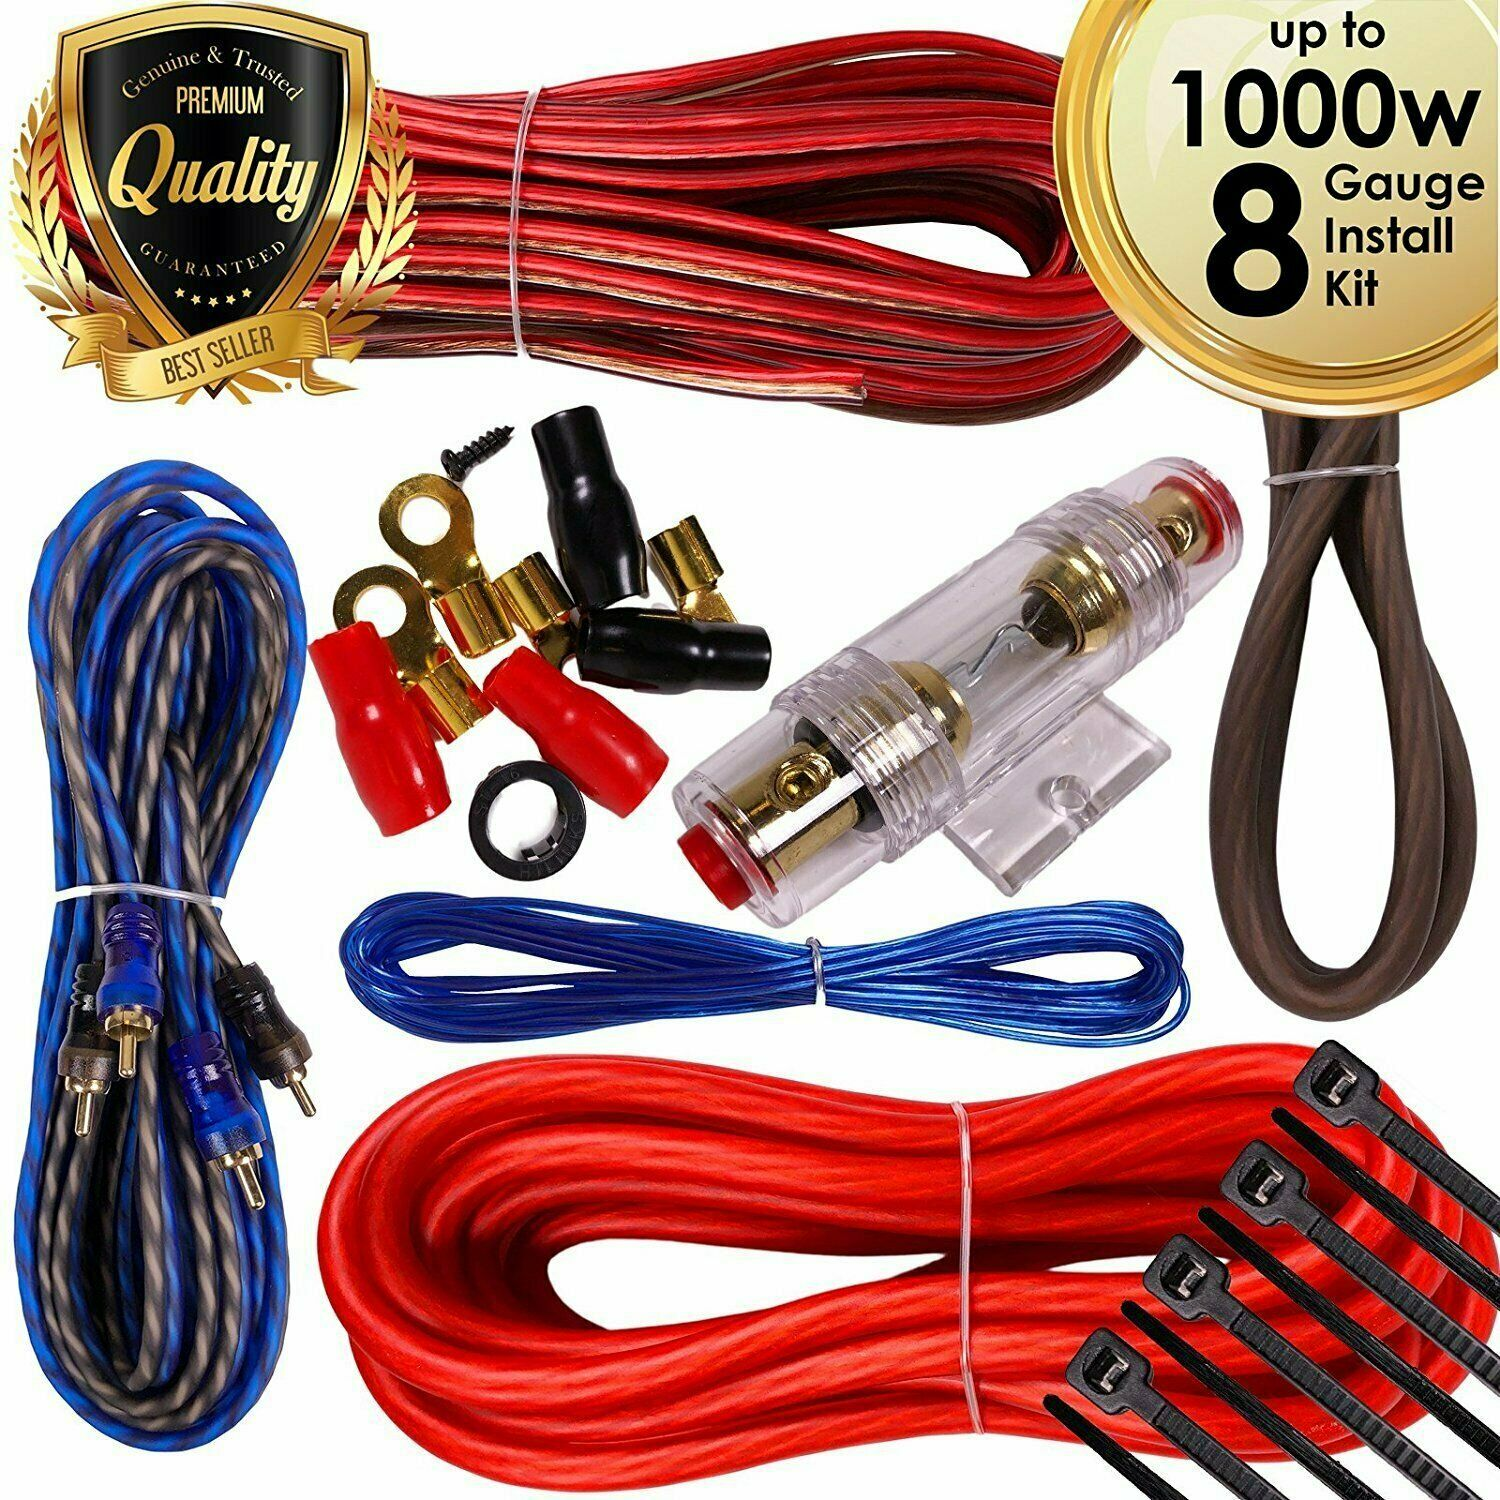 Complete 1000w 8 Gauge Car Amplifier Installation Wiring Kit Amp Pk1 How To Install A Ga Red 1 Of 9free Shipping See More